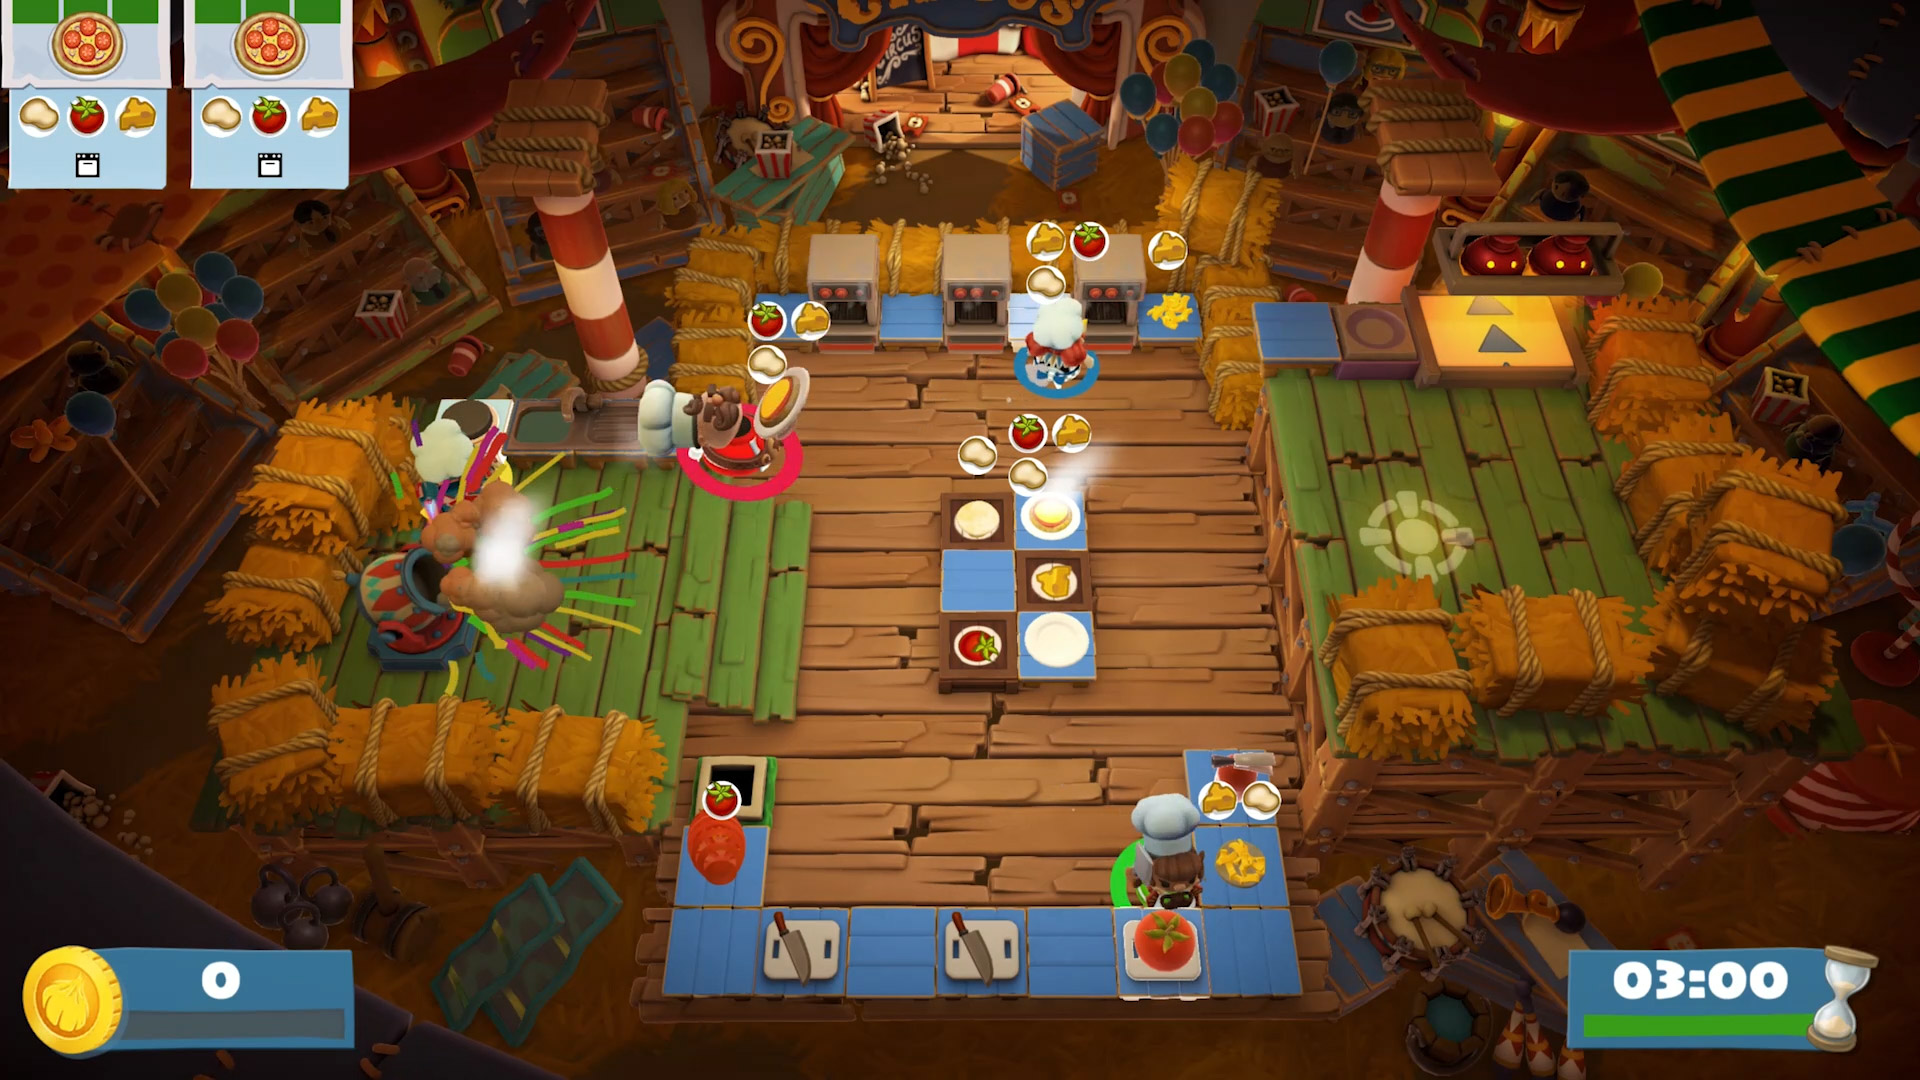 Overcooked 2 - Carnival of Chaos is serving up hot dogs and human cannonballs